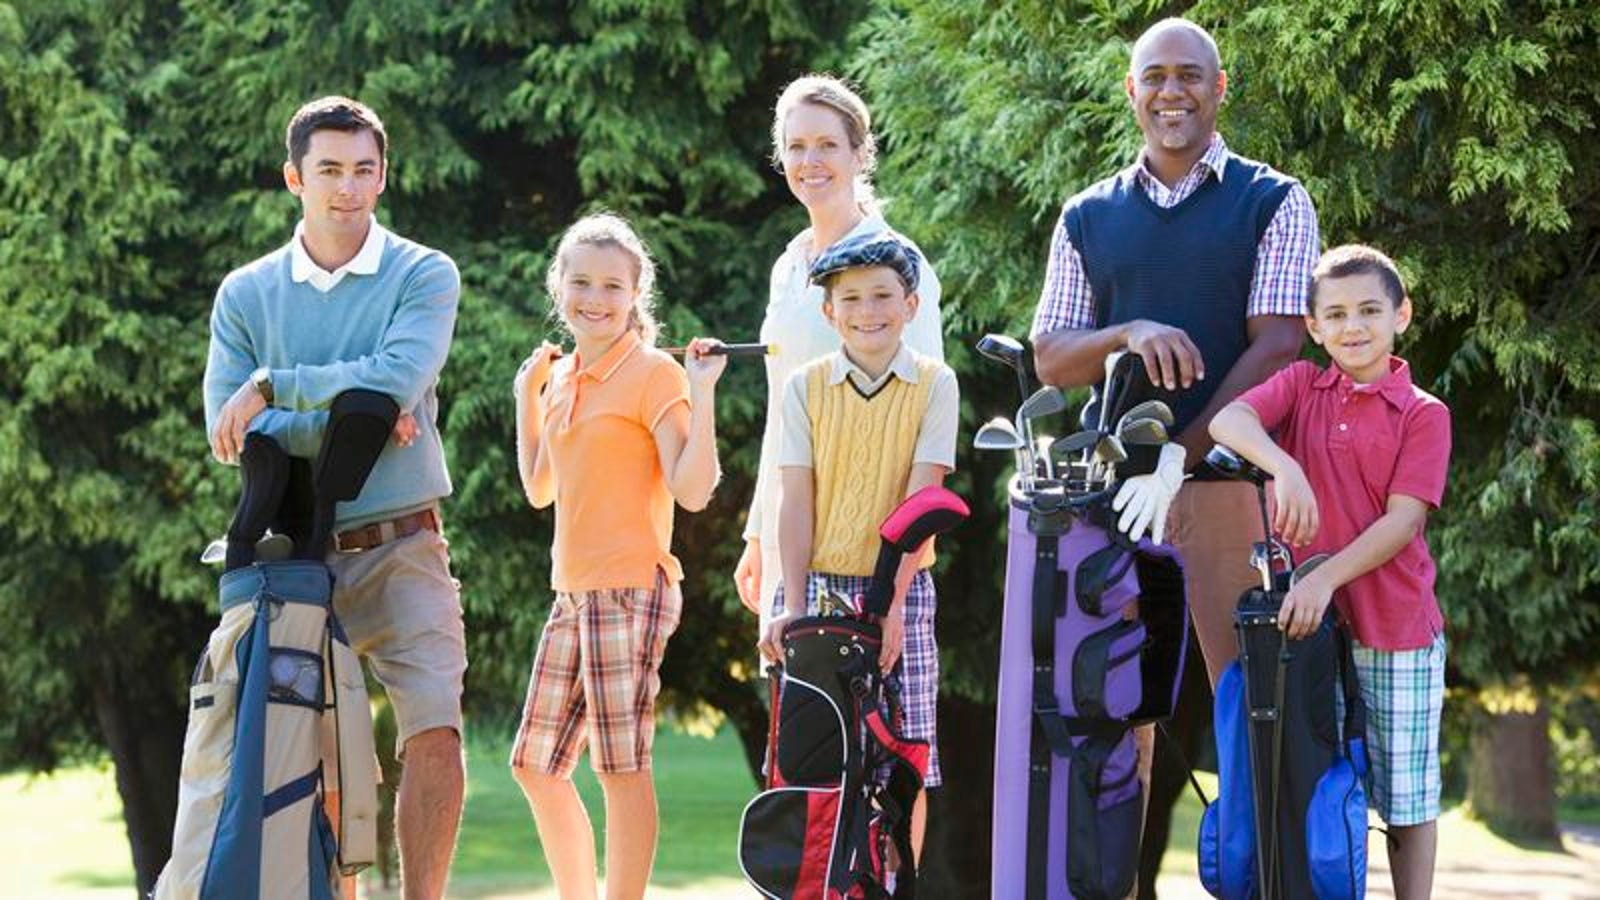 golf pretty sure all those young black kids inspired by